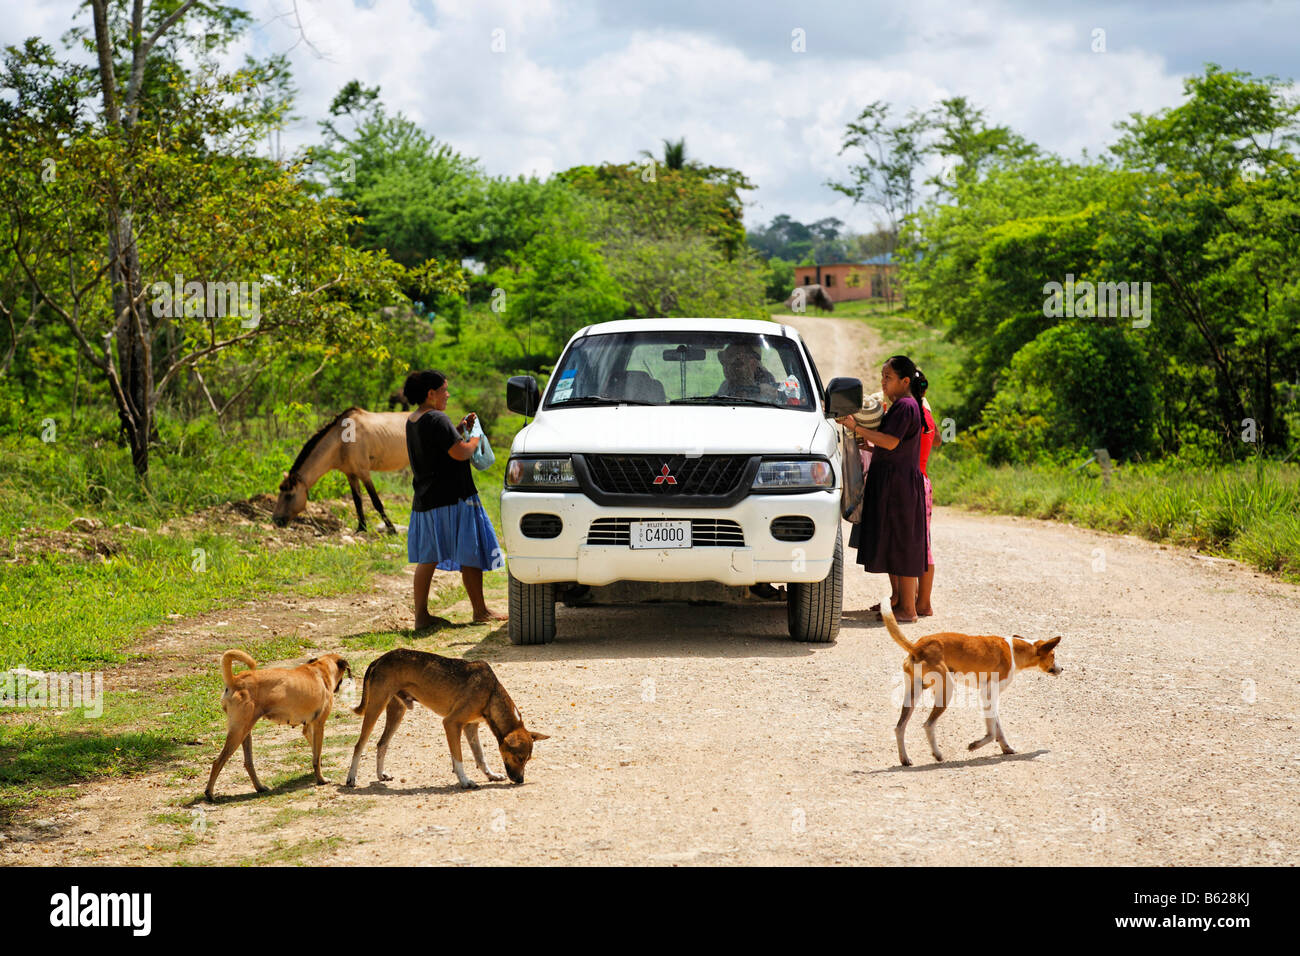 Local women selling souvenirs to tourists in a Mitsubishi car, dogs, horse, unmade road, Punta Gorda, Belize, Central - Stock Image